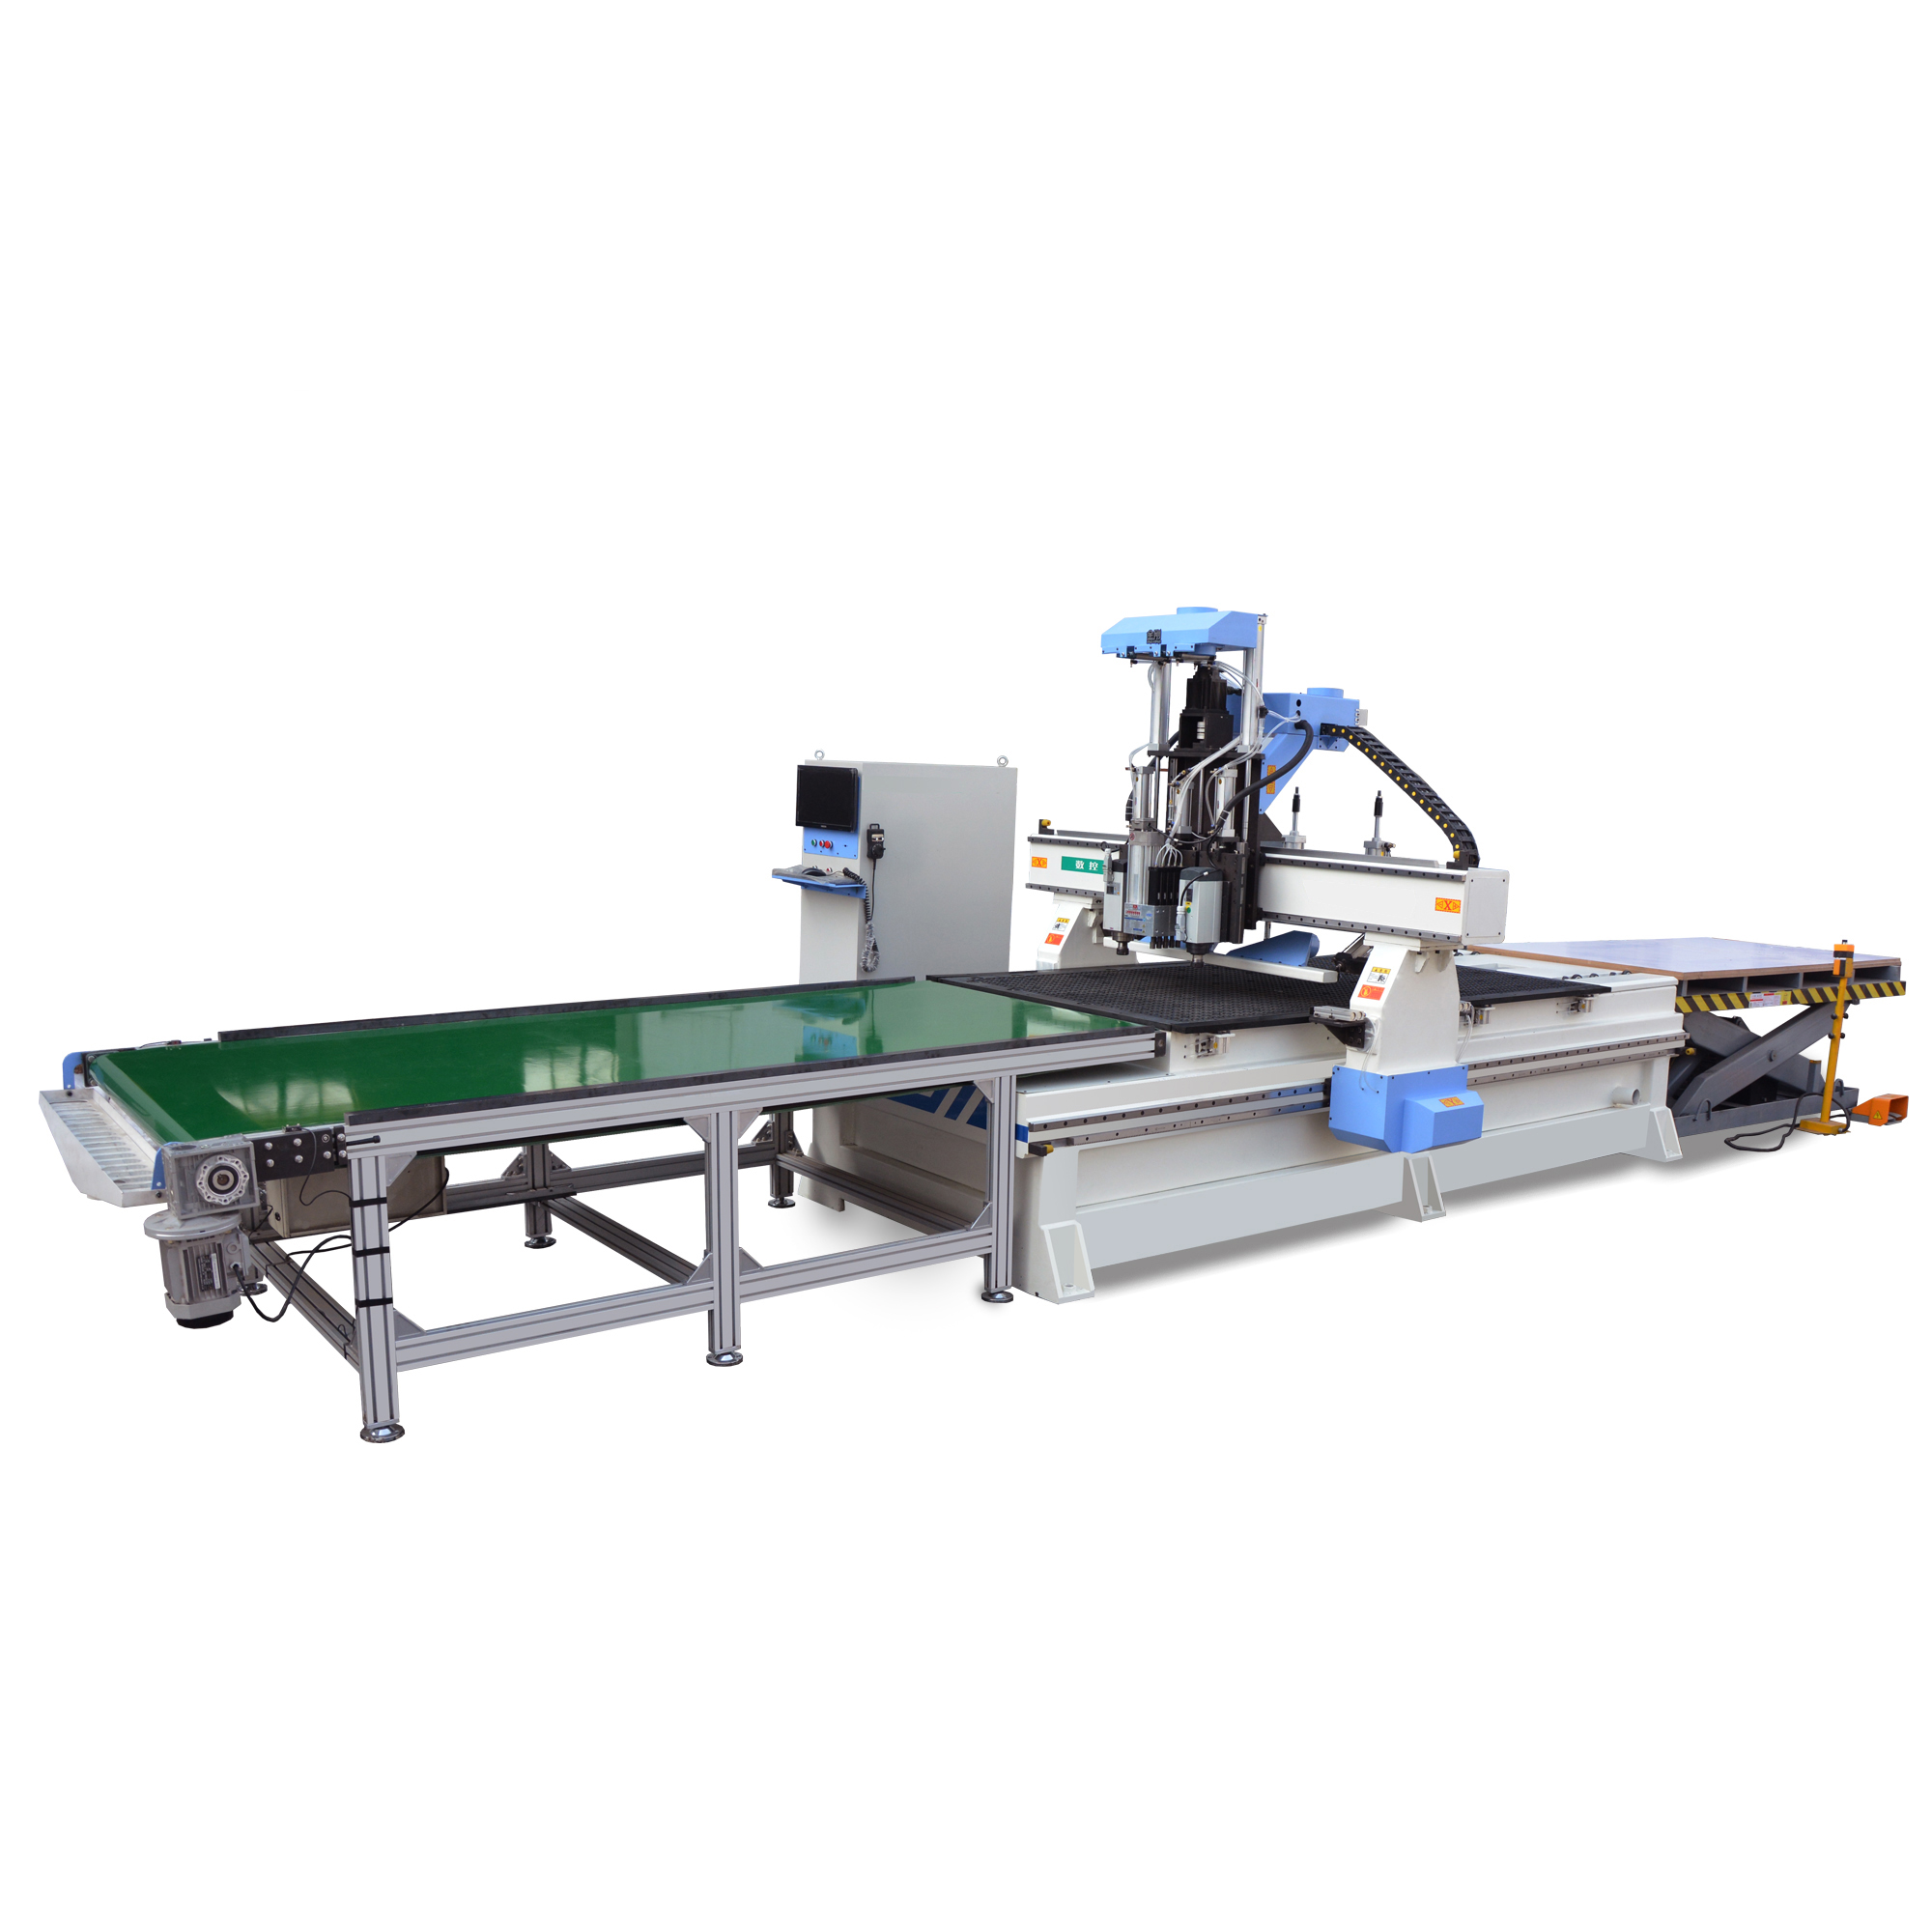 Furniture production line multipurpose woodworking router machine